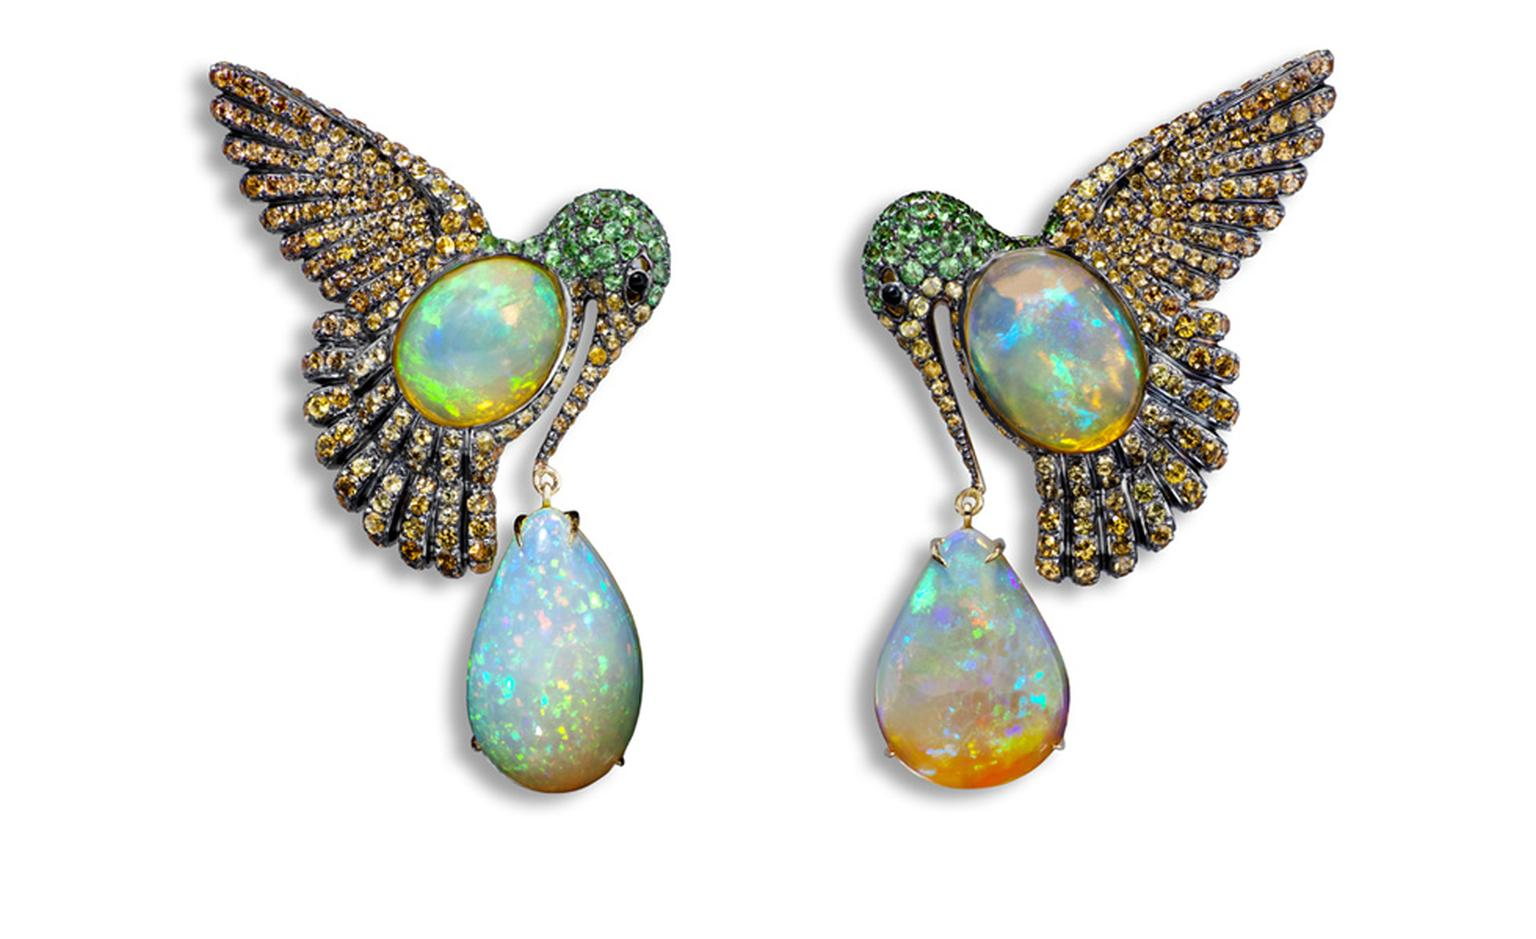 Lydia Courteille. Colibri earrings, orange Mexican opals, orange sapphires, green garnet, blackened gold. POA